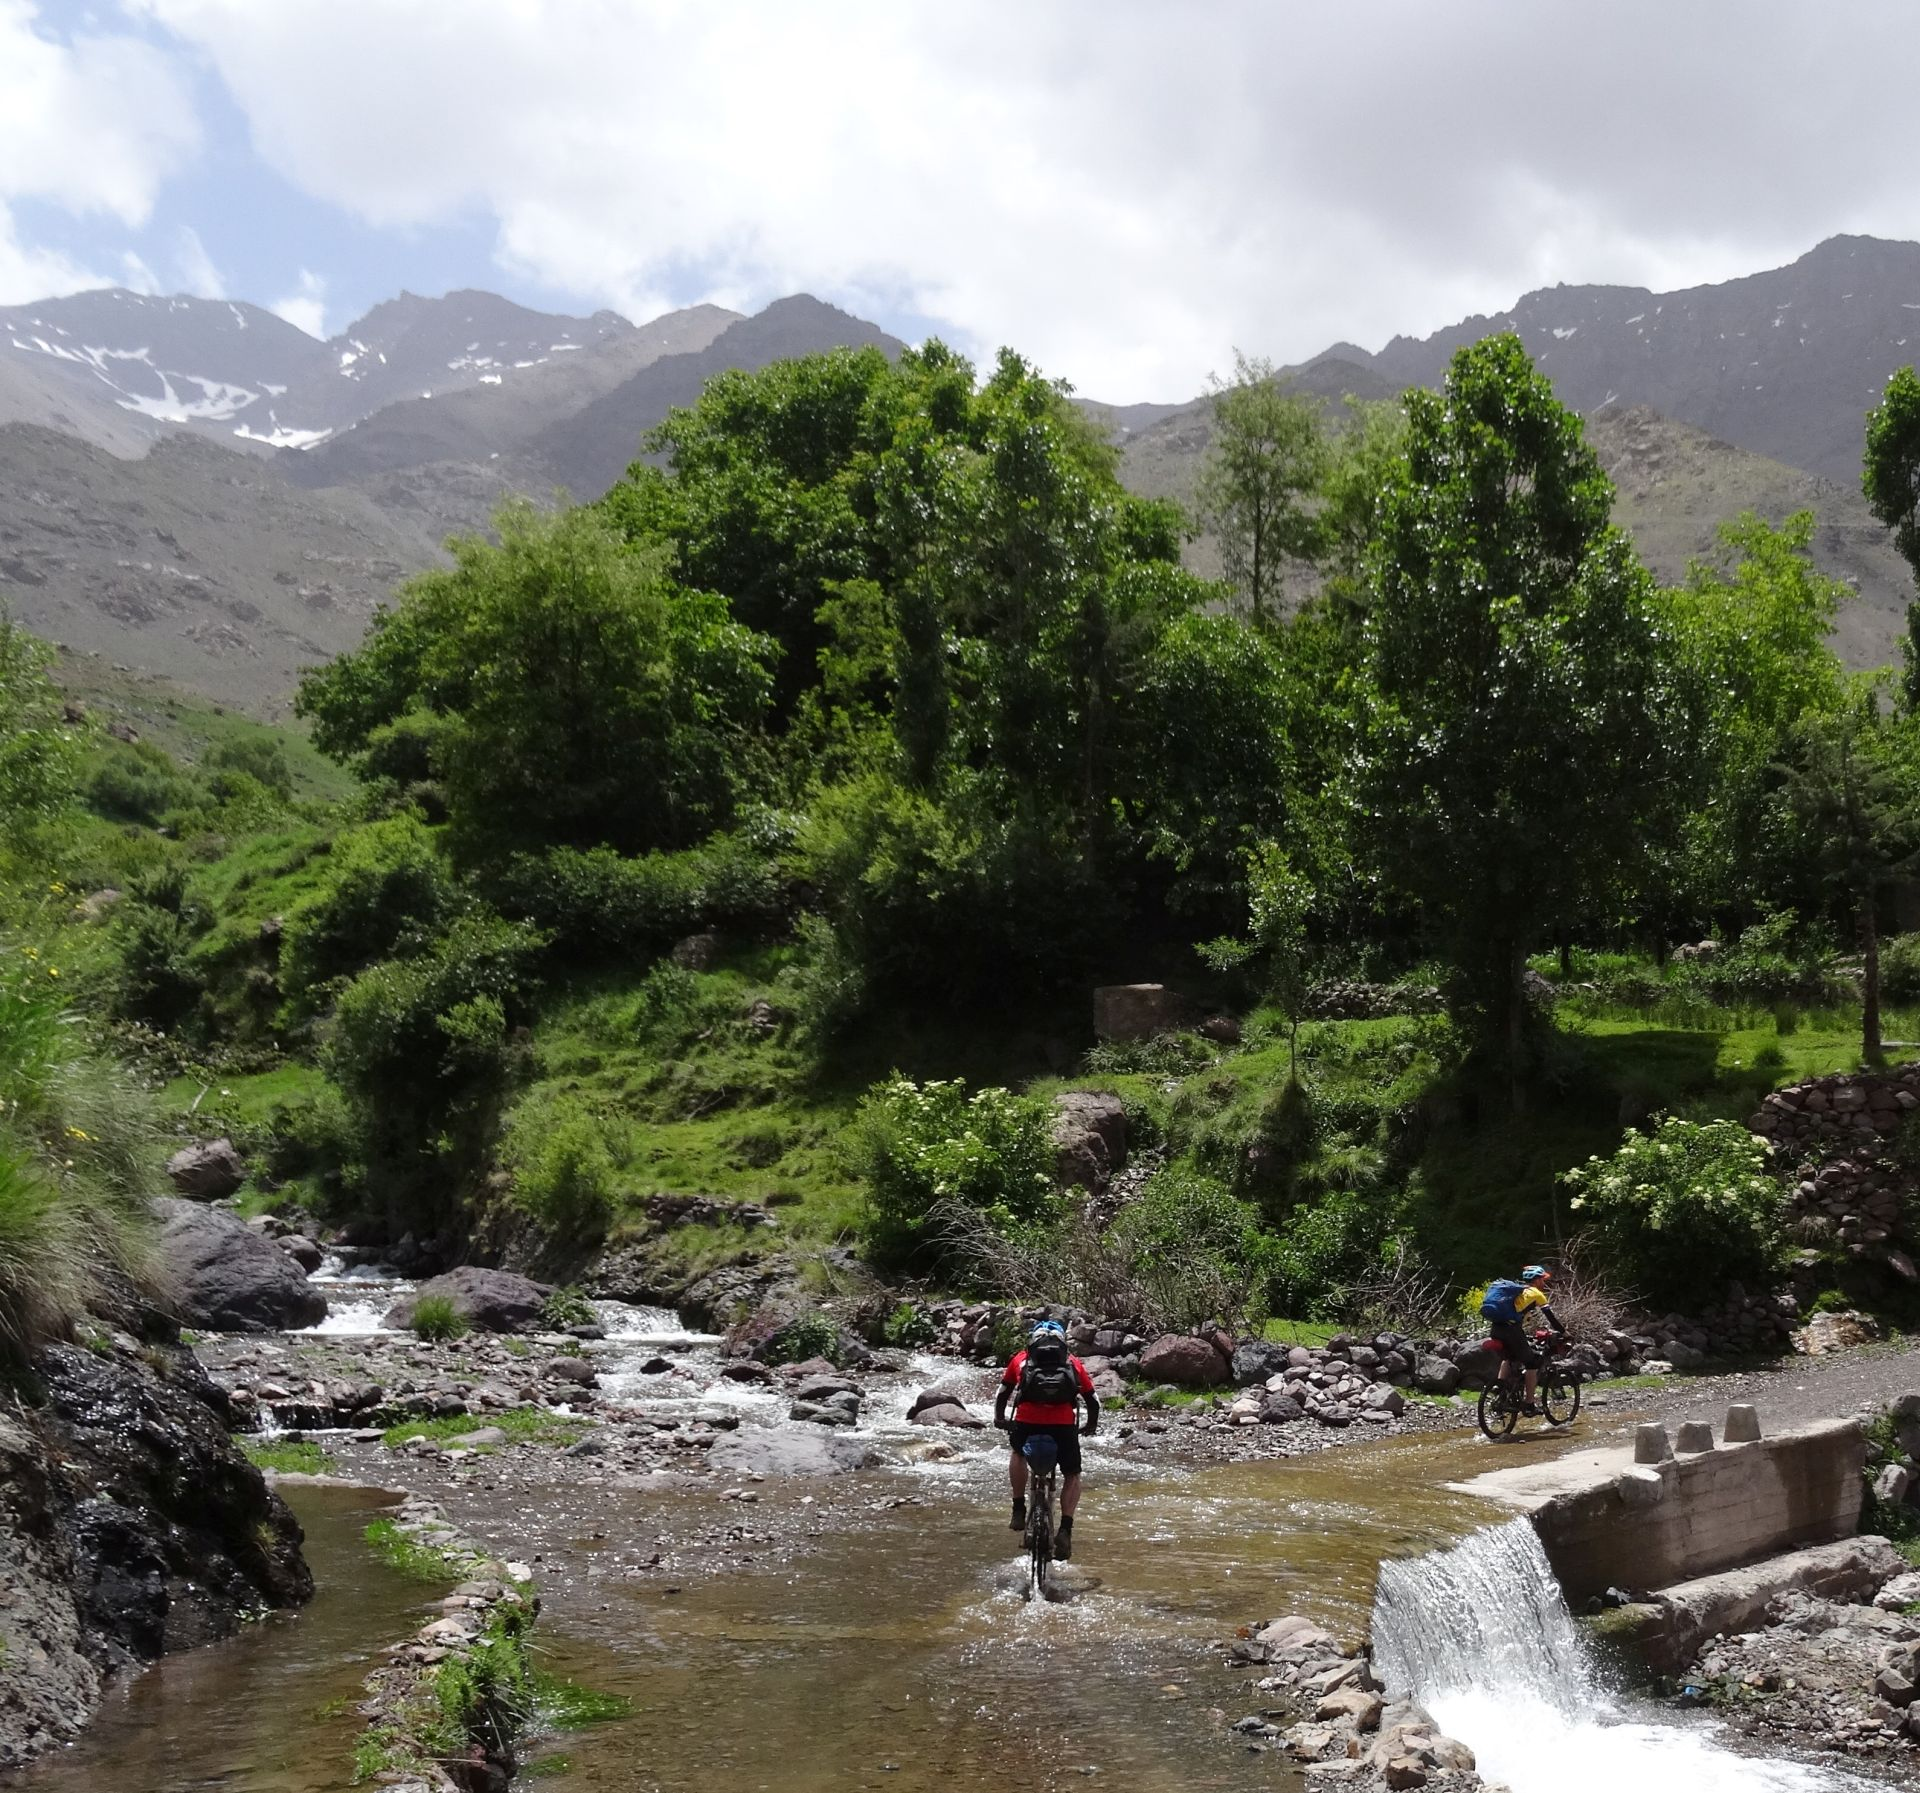 Day 8 - Splish Splash Splosh, & nearly Bish Bash Bosh! Wheel dip in the Assif Imenane river, leaving Tizi-n-Tacheddirt, en route to Imlil, before our final day of riding, tomorrow. Bou Iguenouane (12,736 ft) on left, Jbel Aksoual (12,828 ft) right - form part of a 10-mile ridge traverse for another time! © Steve Woodward